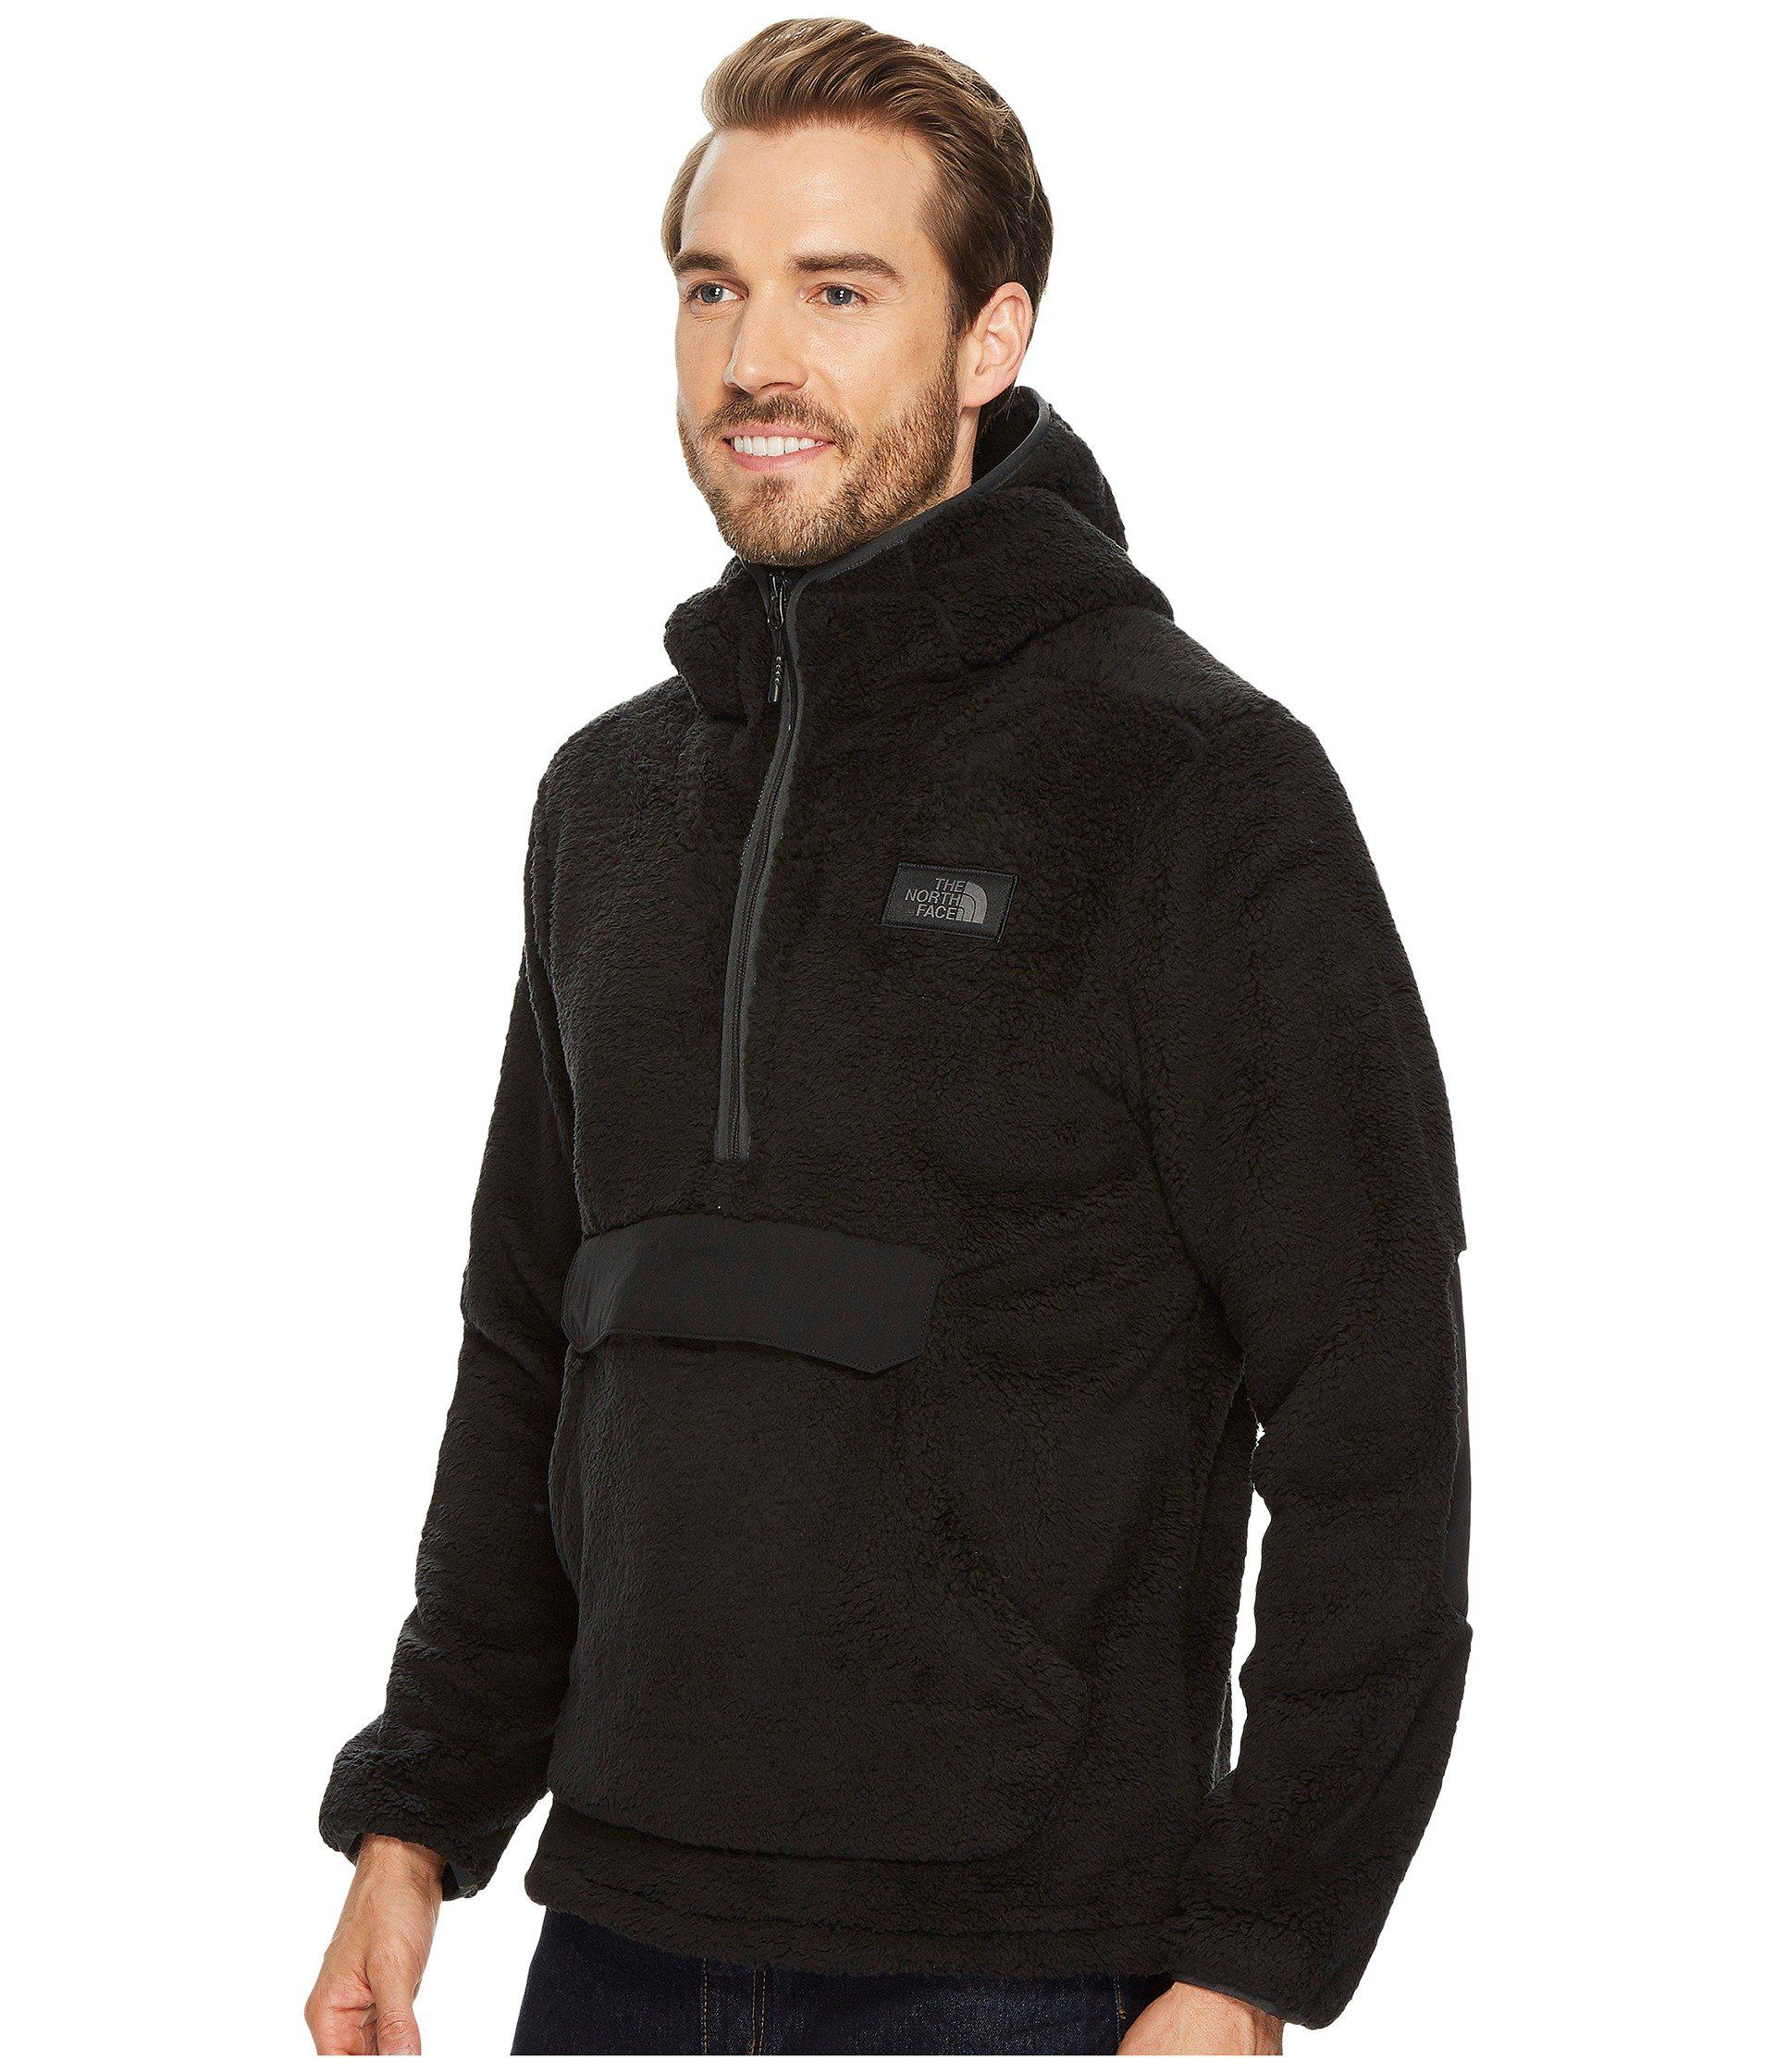 Lyst - The North Face Campshire Pullover Hoodie in Black for Men 2ea4dc04f